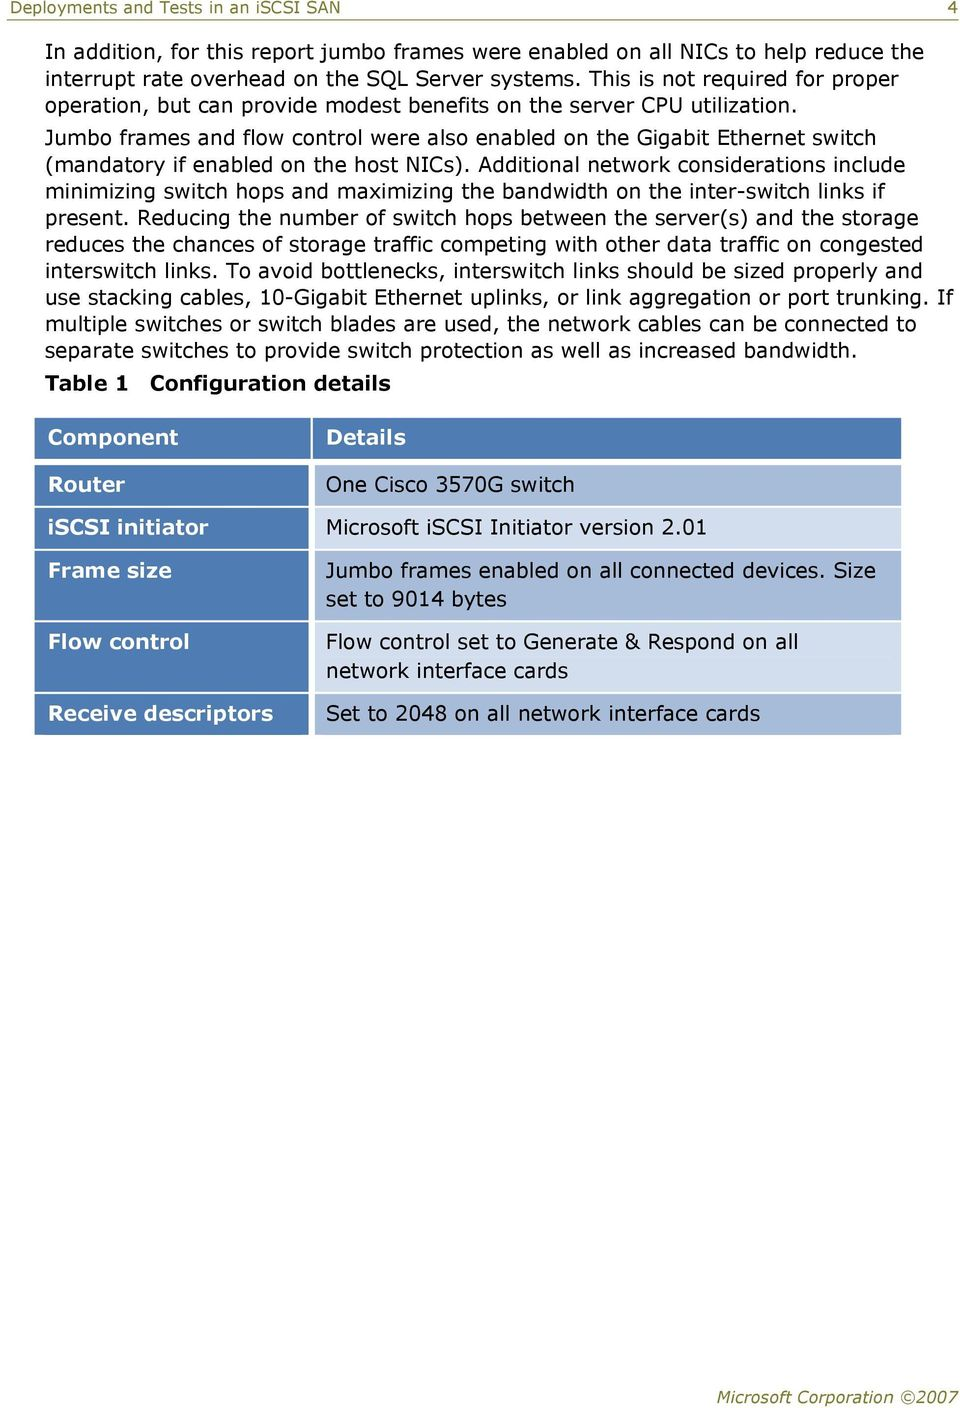 Deployments and Tests in an iscsi SAN - PDF